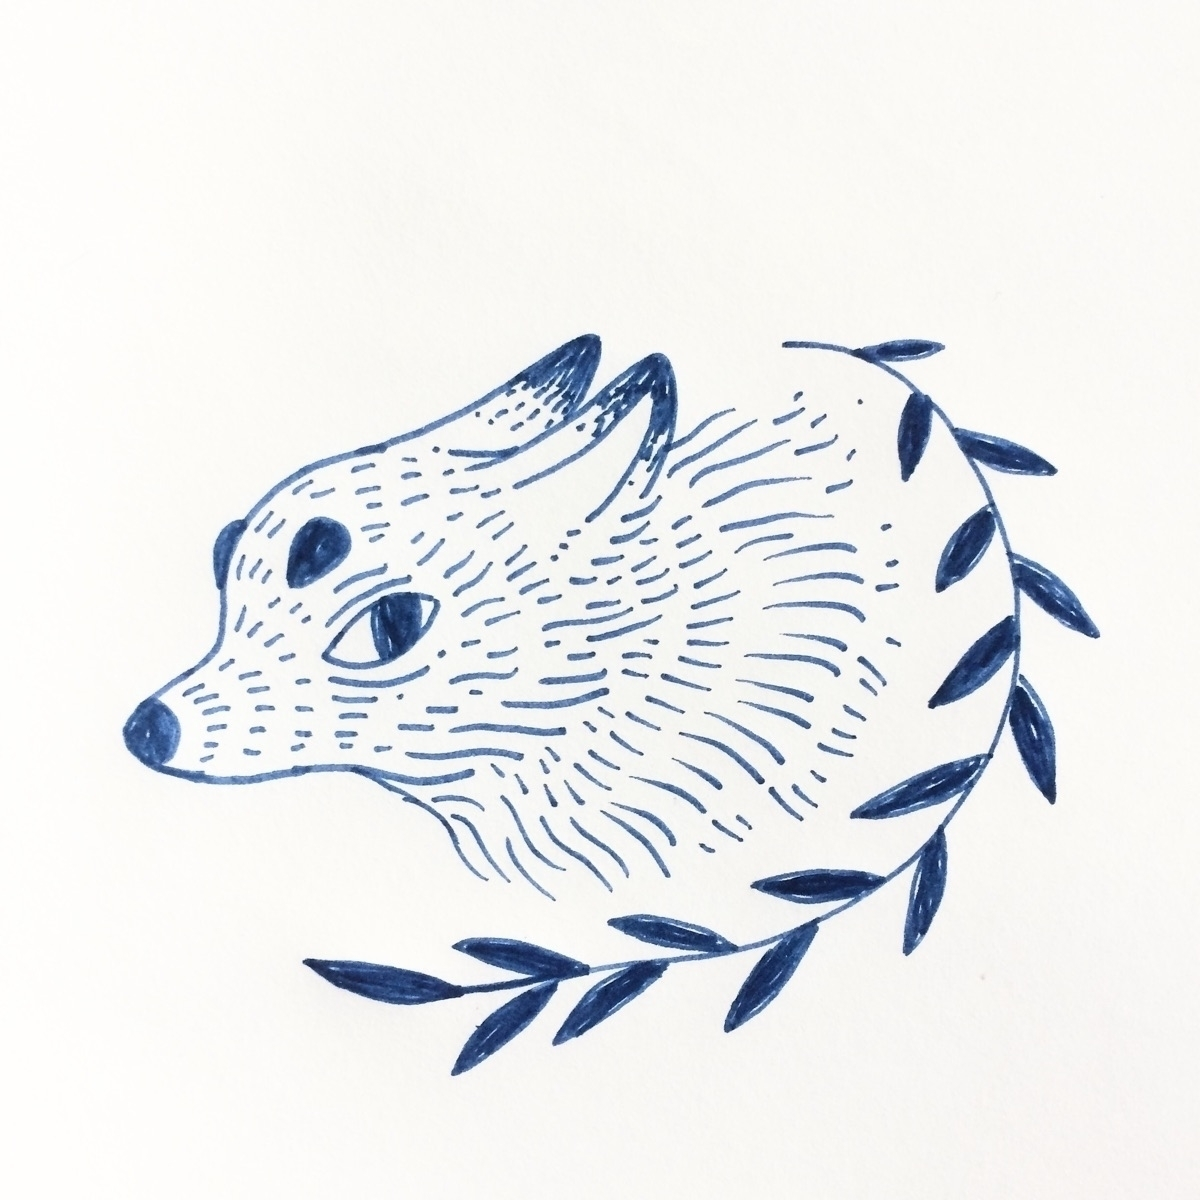 Flash tattoo draw - wolf, ink, flash - skeenep | ello